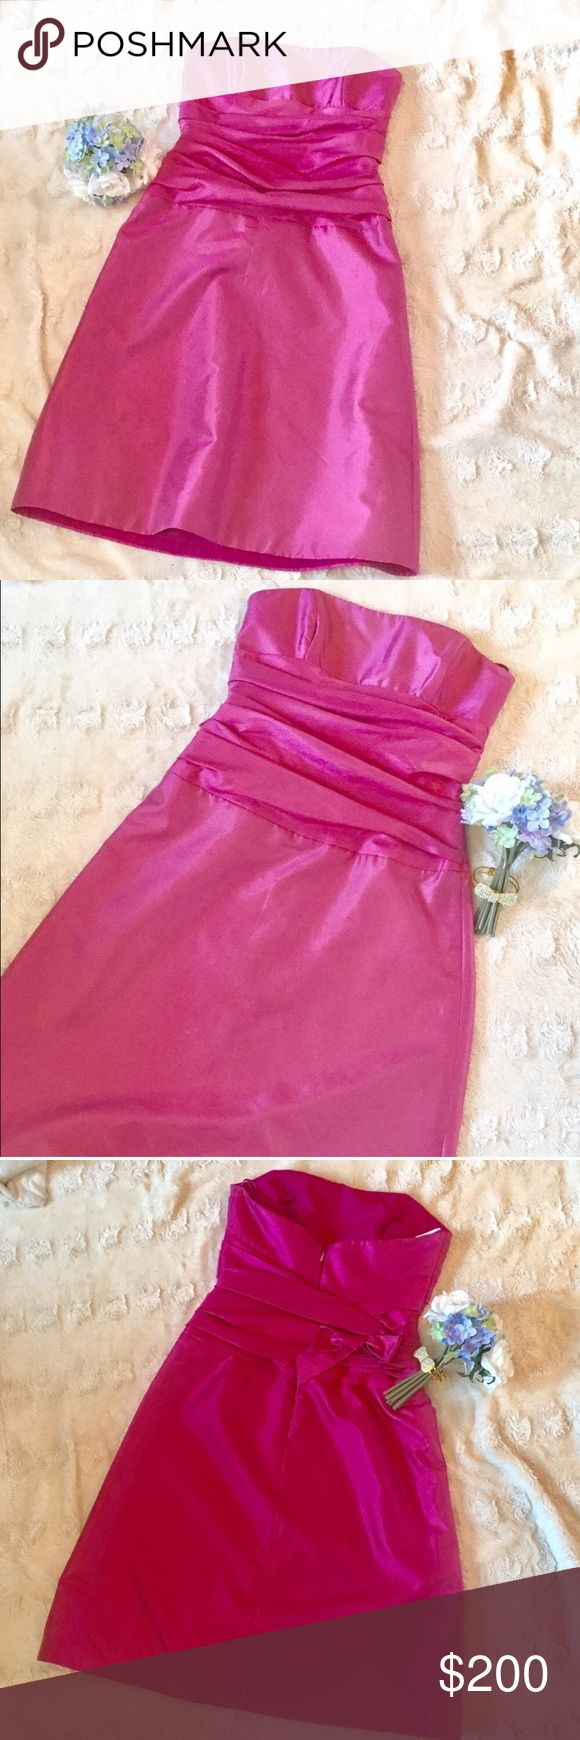 Amsale Pink  Strapless cocktail Dress. Size 6 Amsale Pink  Strapless cocktail  Dress. Size 6. Excellent used condition. One of the the most upscale bridal designers for a fraction of the original price! Perfect dress for prom,  bridesmaid or maid of honor. amsale Dresses Strapless